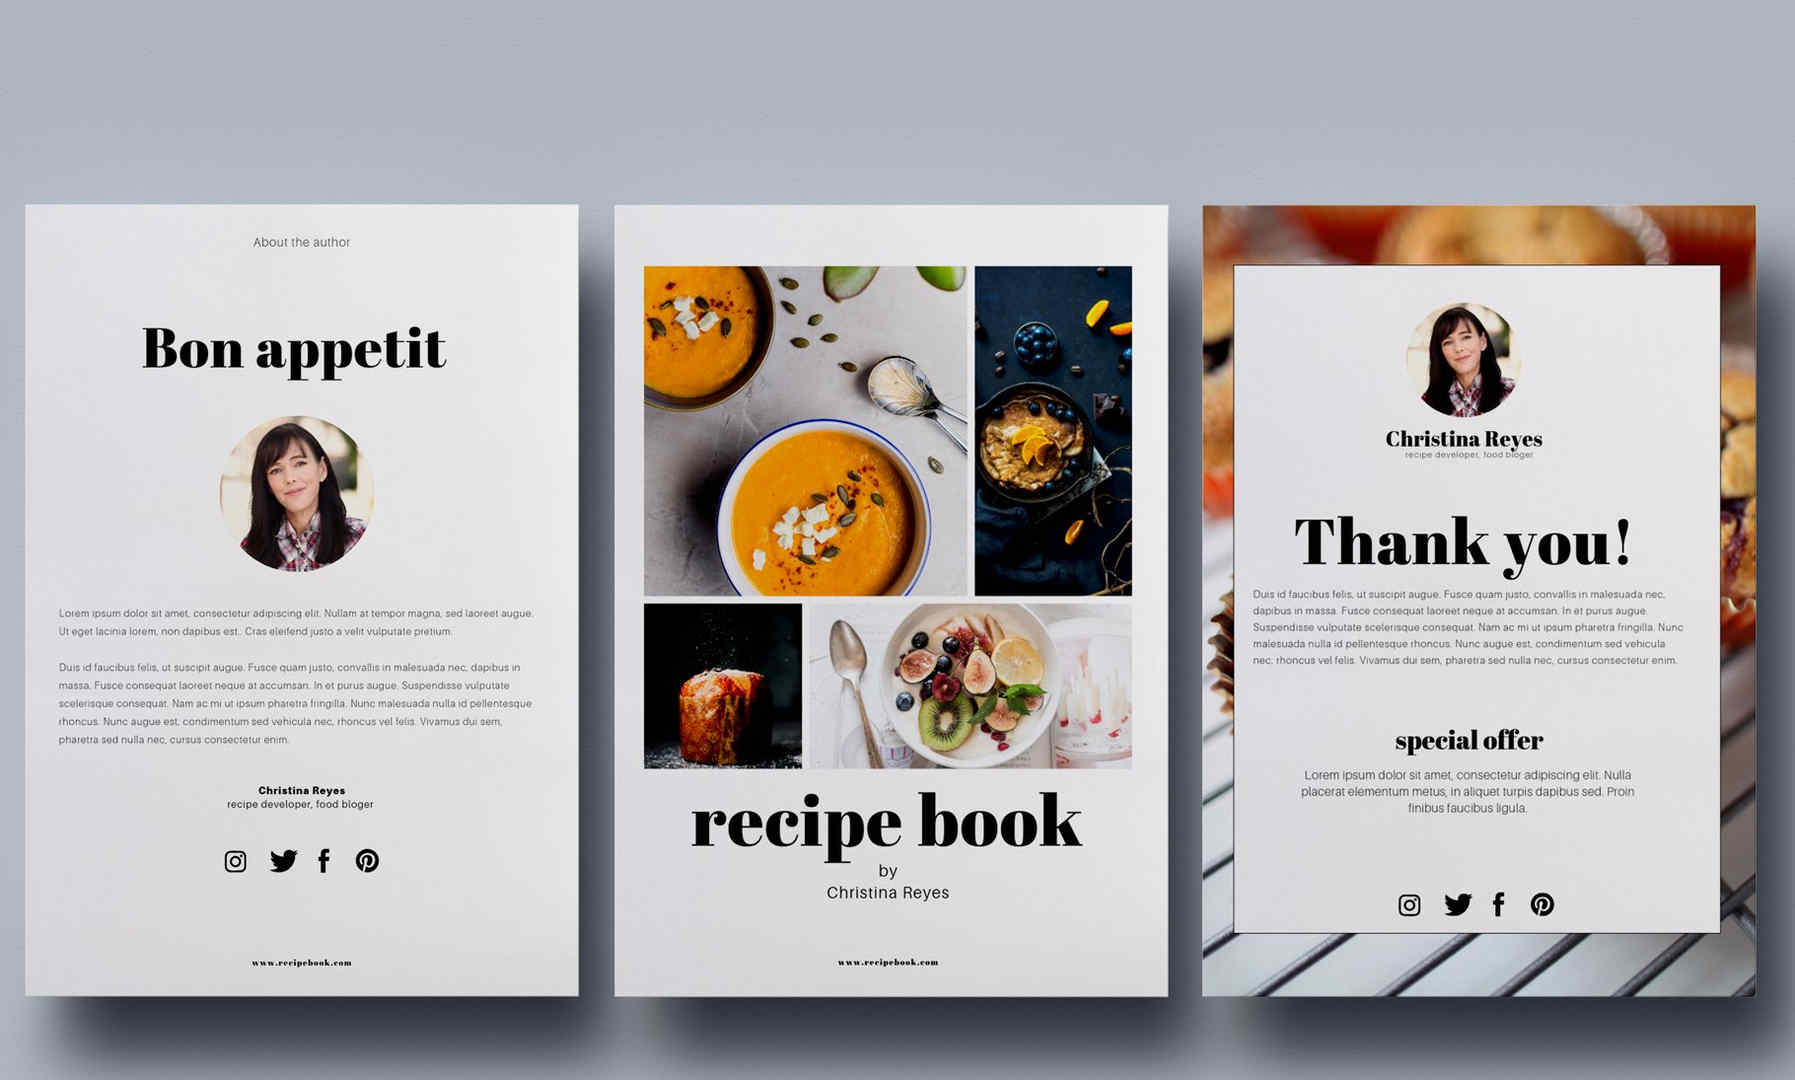 recipebook_canva_template_06-.jpg